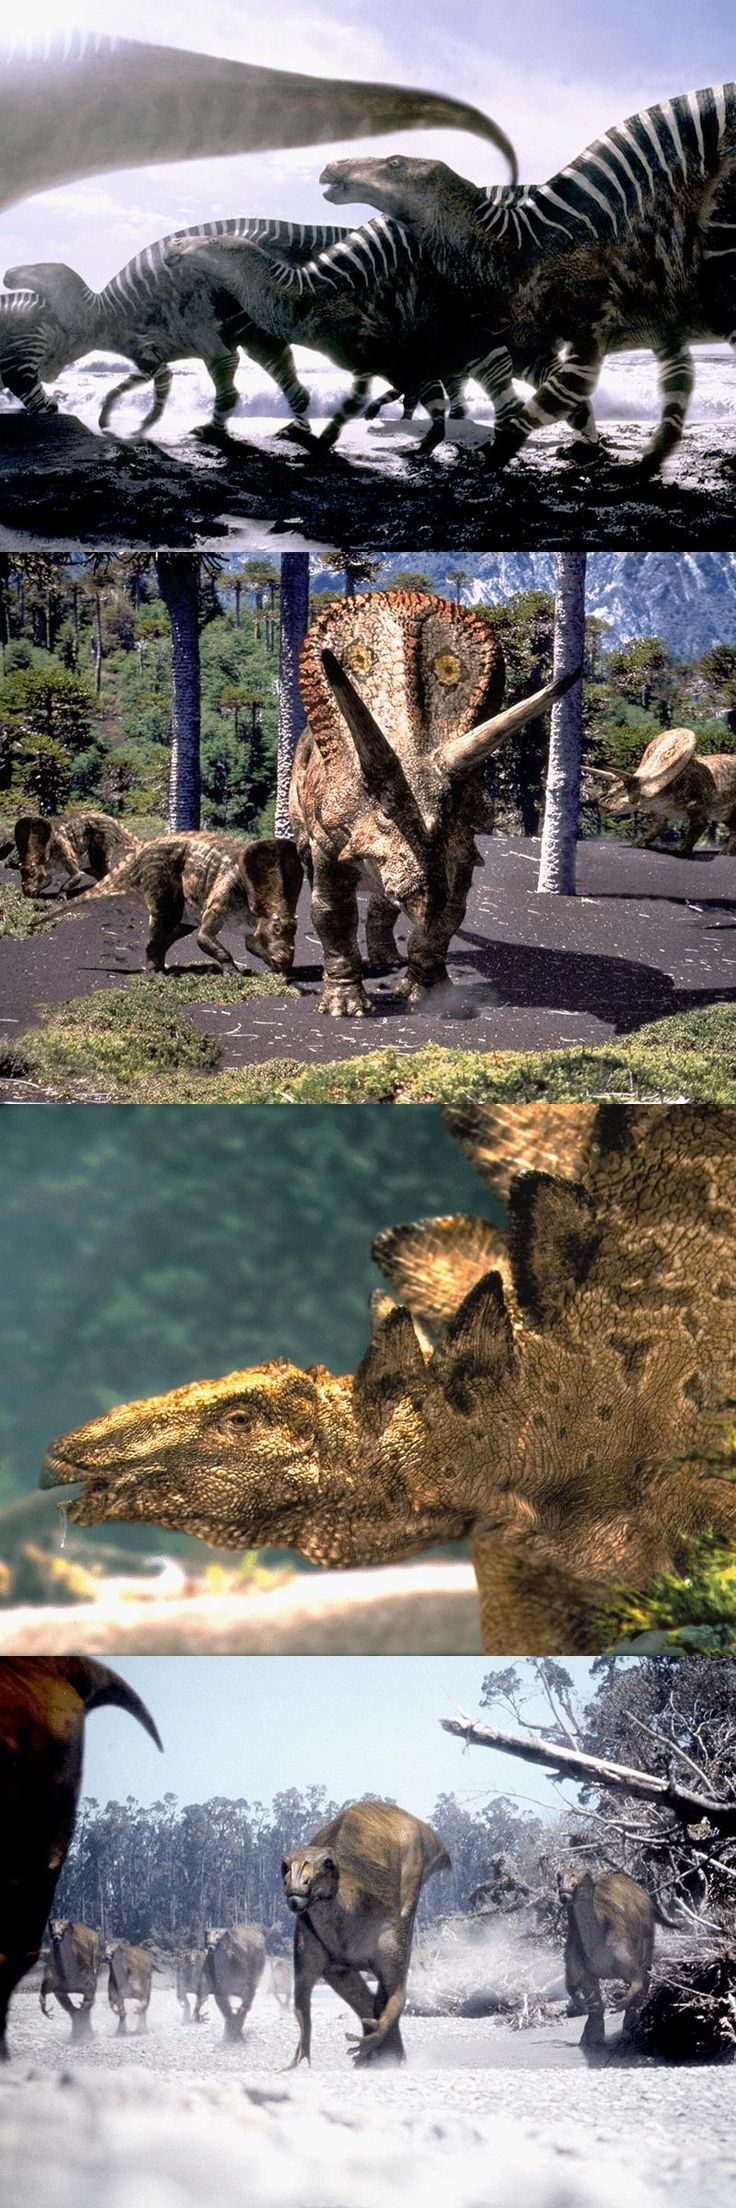 Walking With Dinosaurs<3 A lot of the stuff on there is inaccurate now but it was the show that really got me into dinosaurs